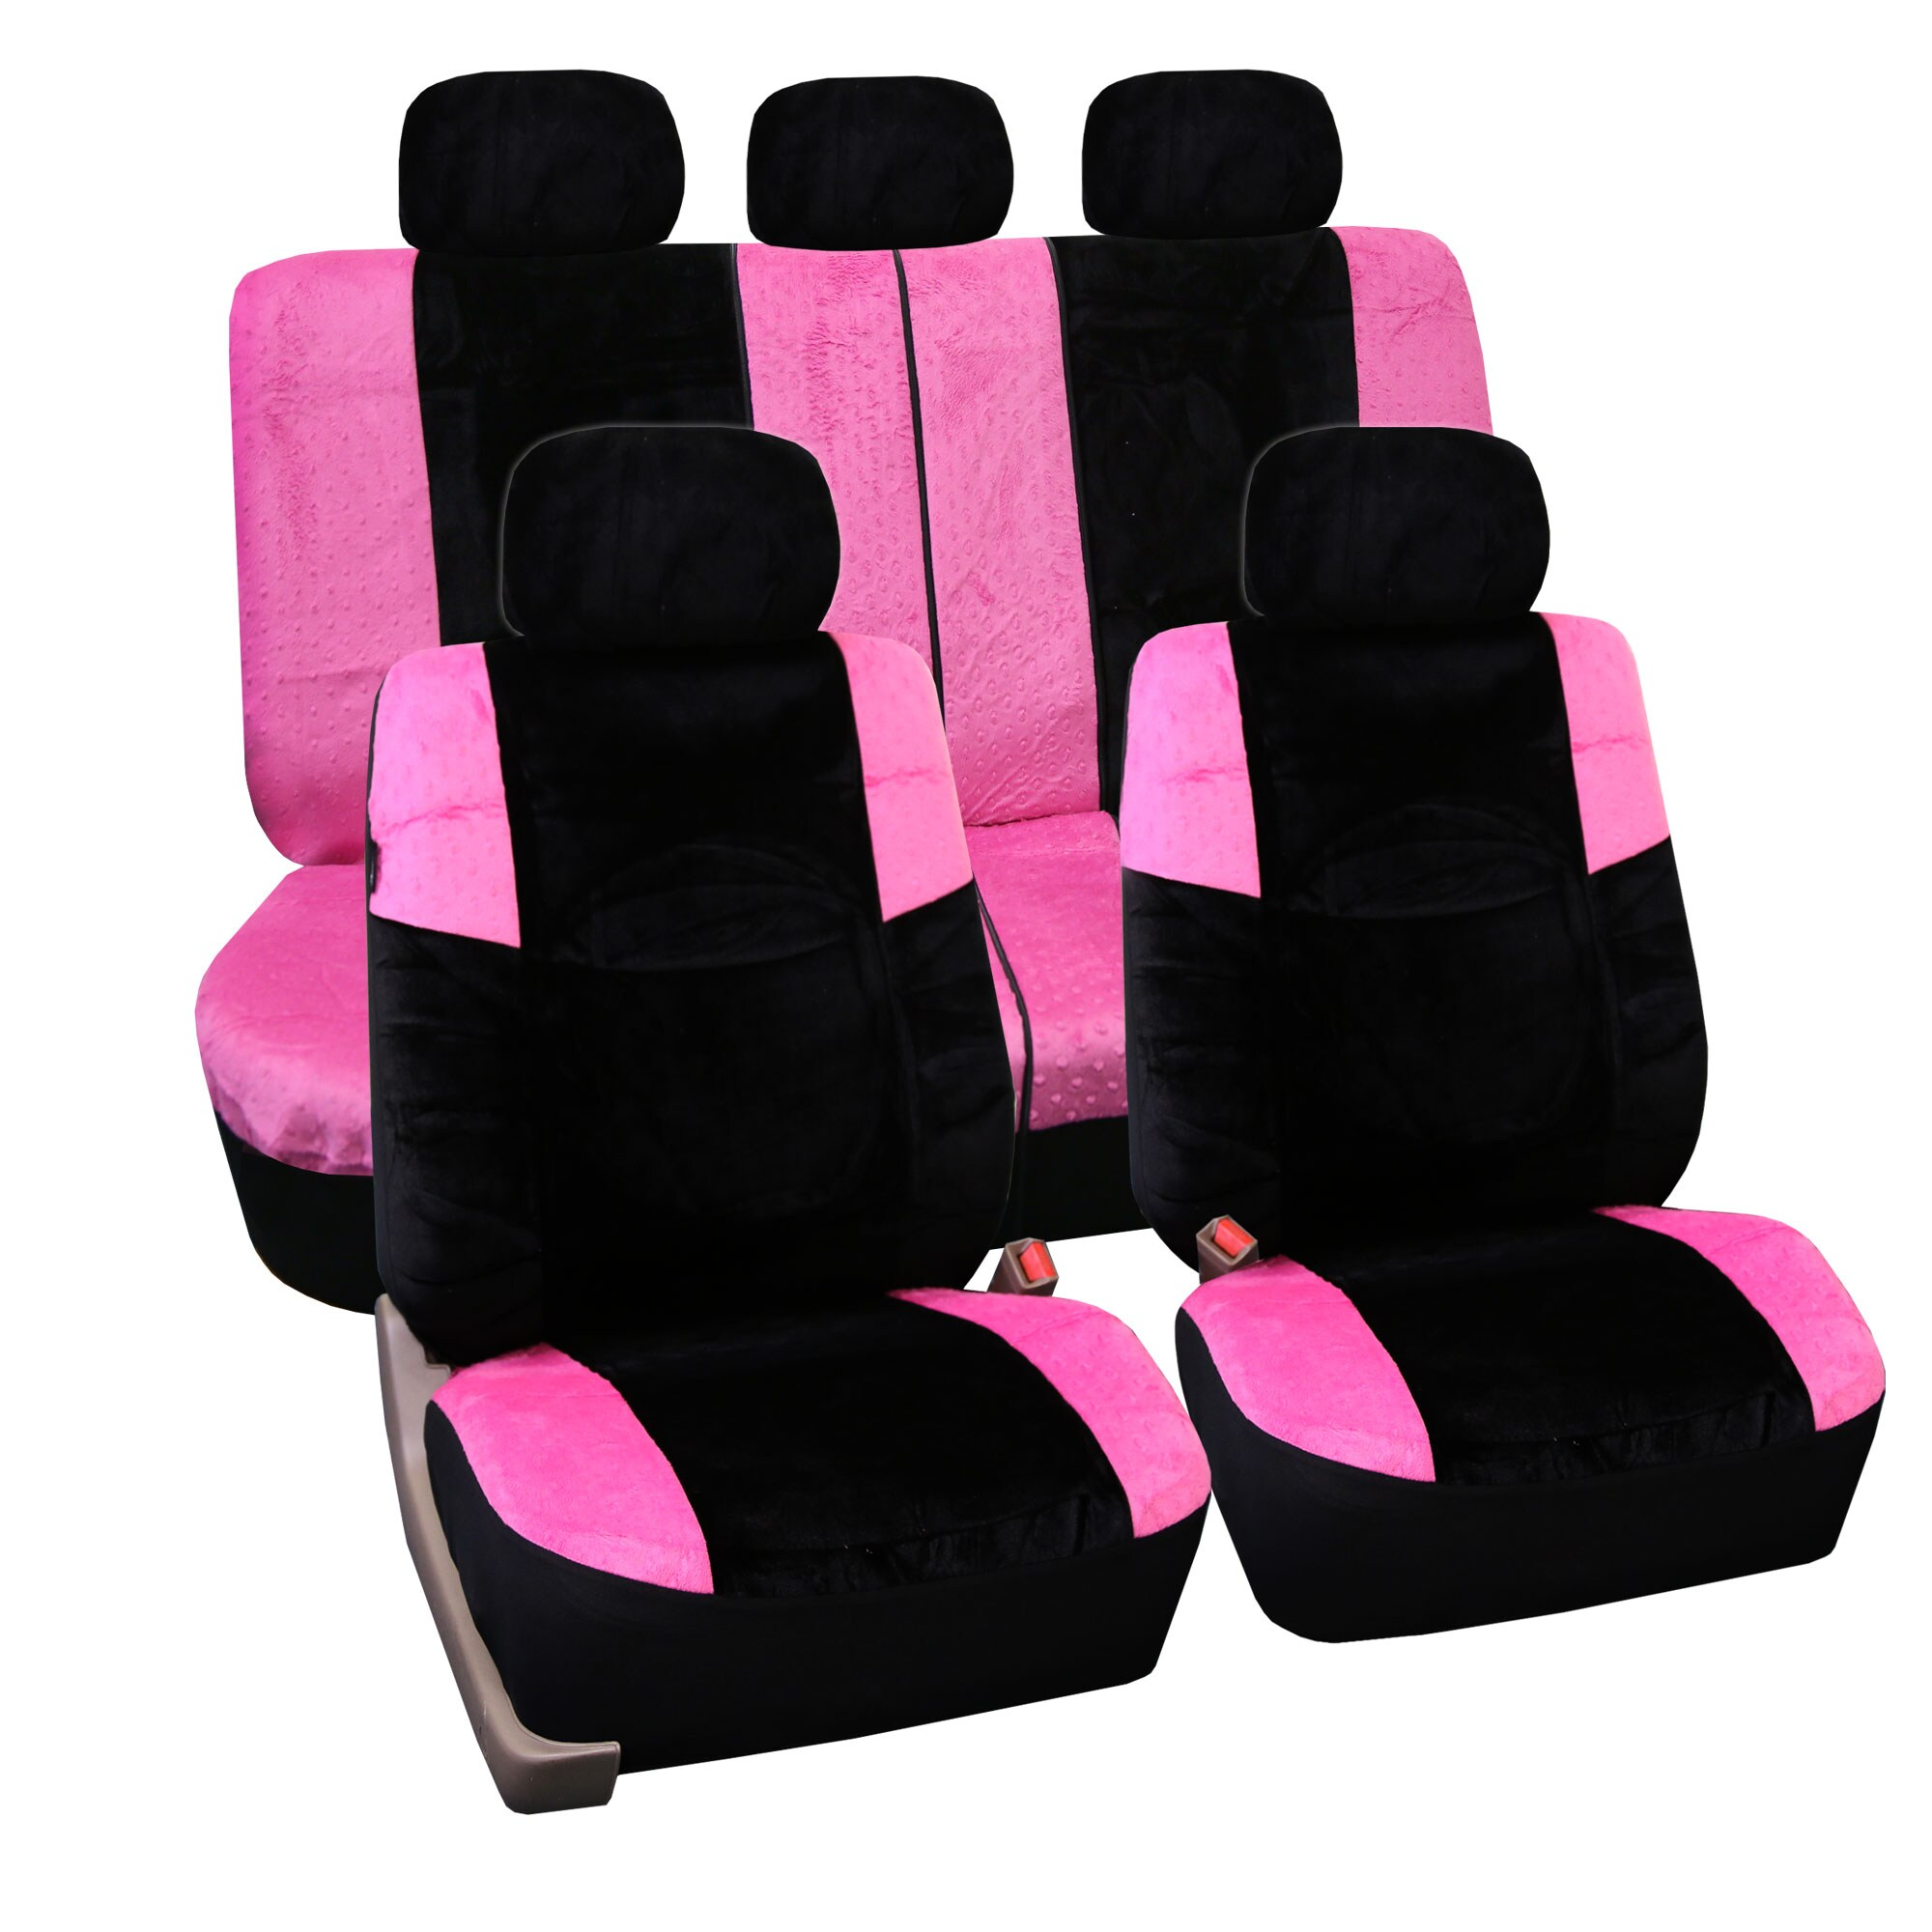 FH Group Pink Lush Velour Airbag Compatible Auto Seat Cov...